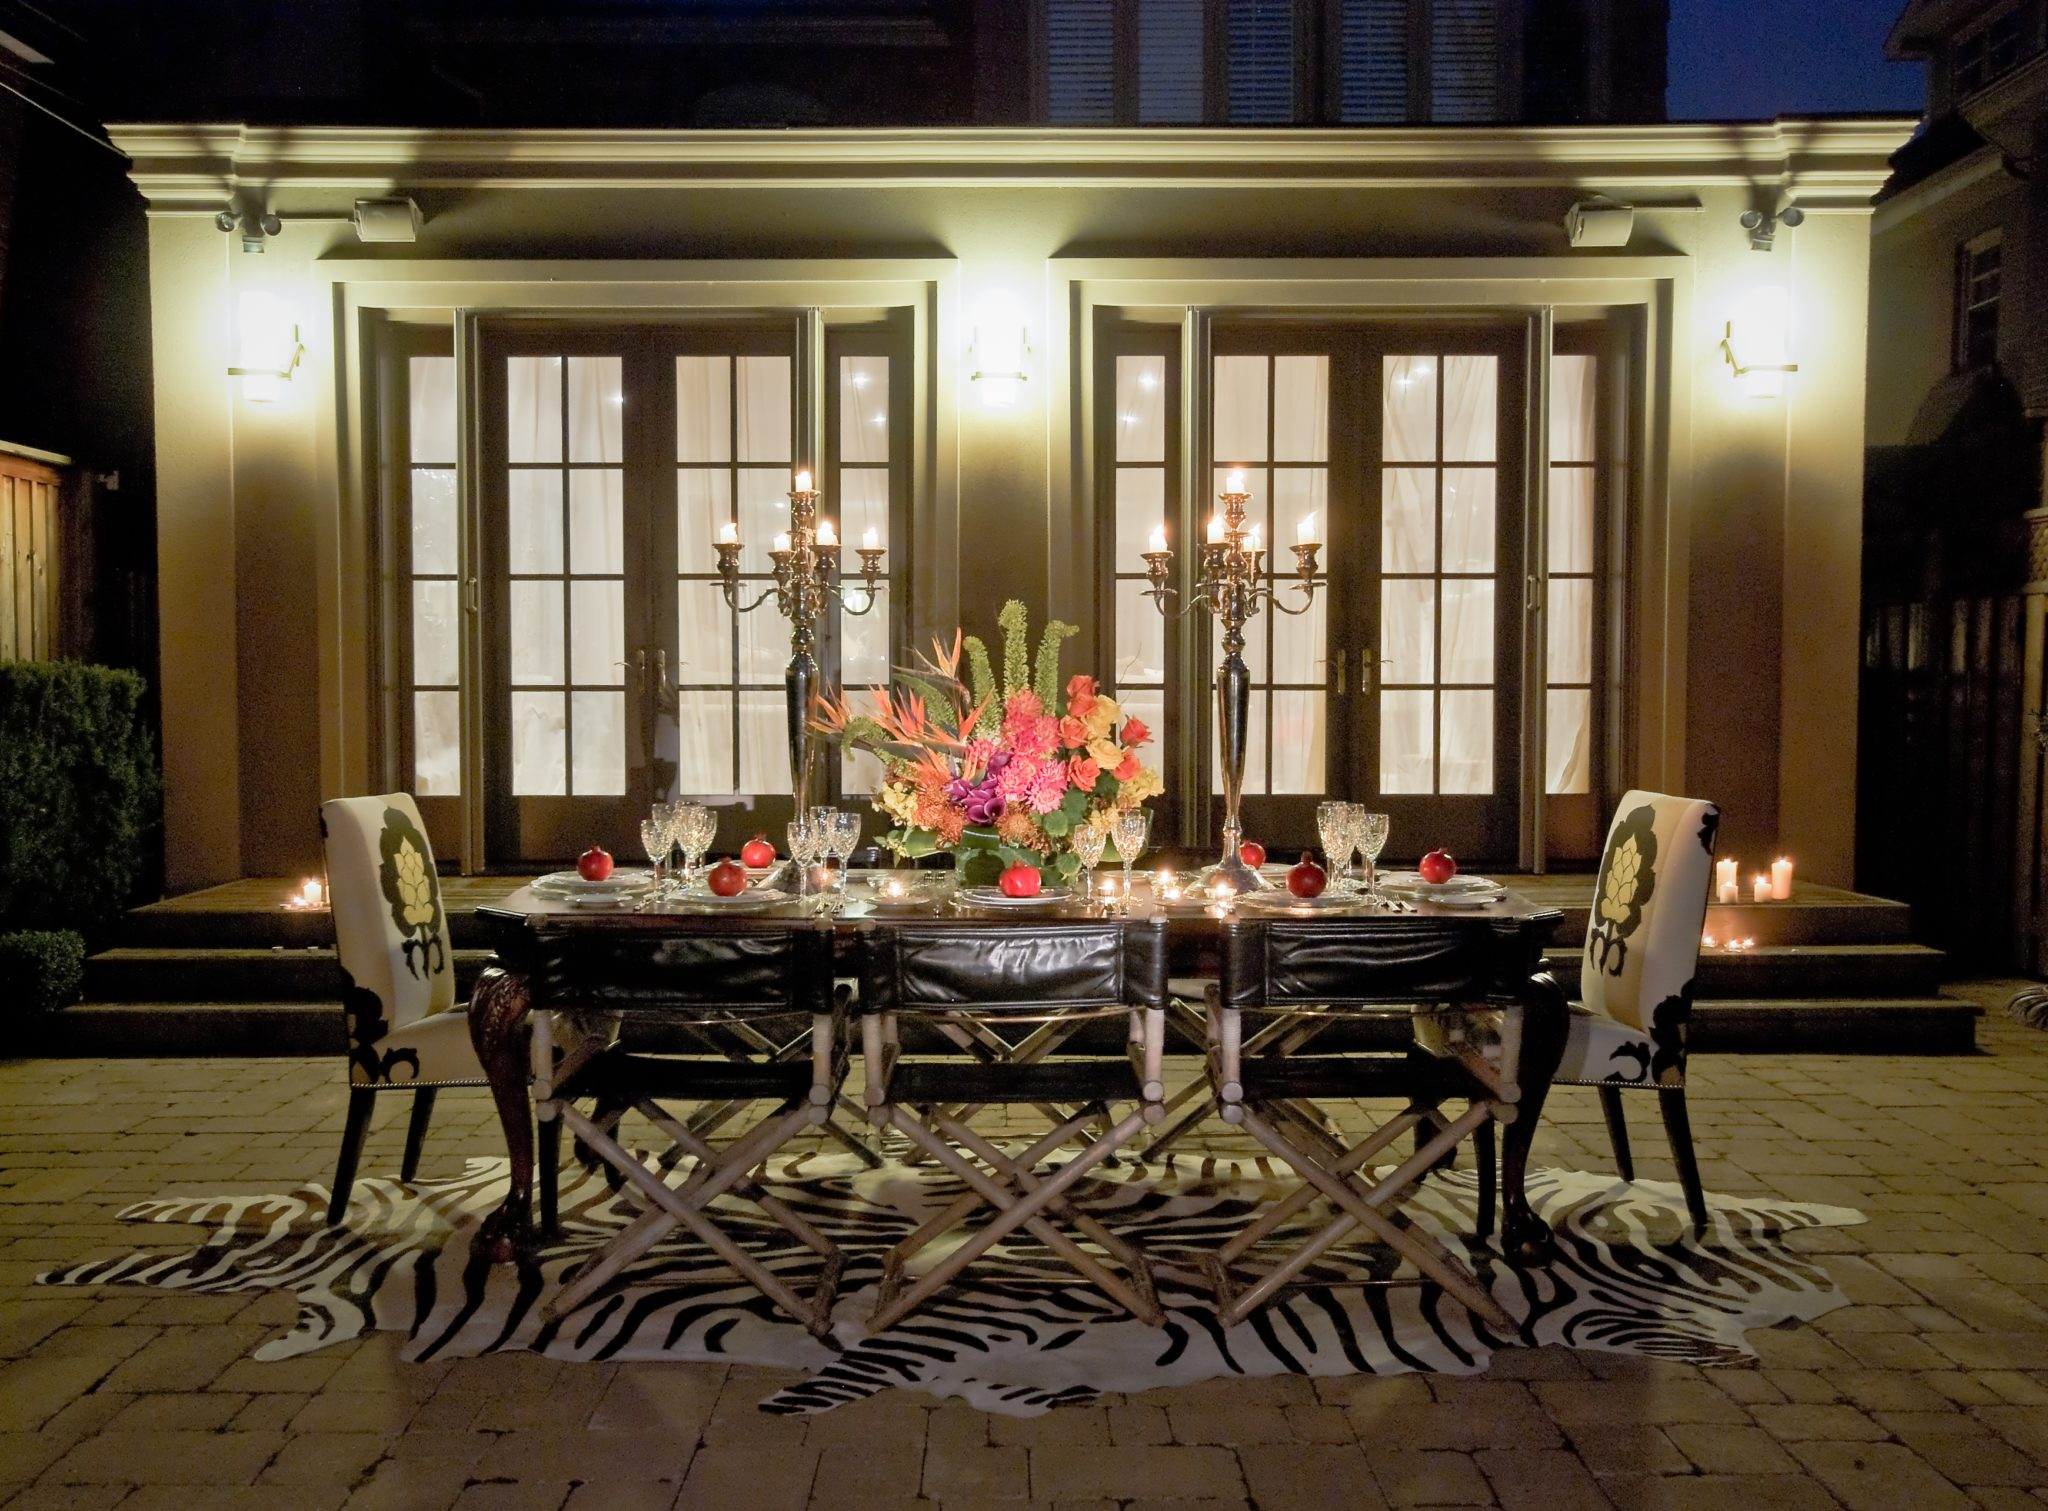 Glamourous Outdoor Dining Room by Lucid Interior Design Inc.